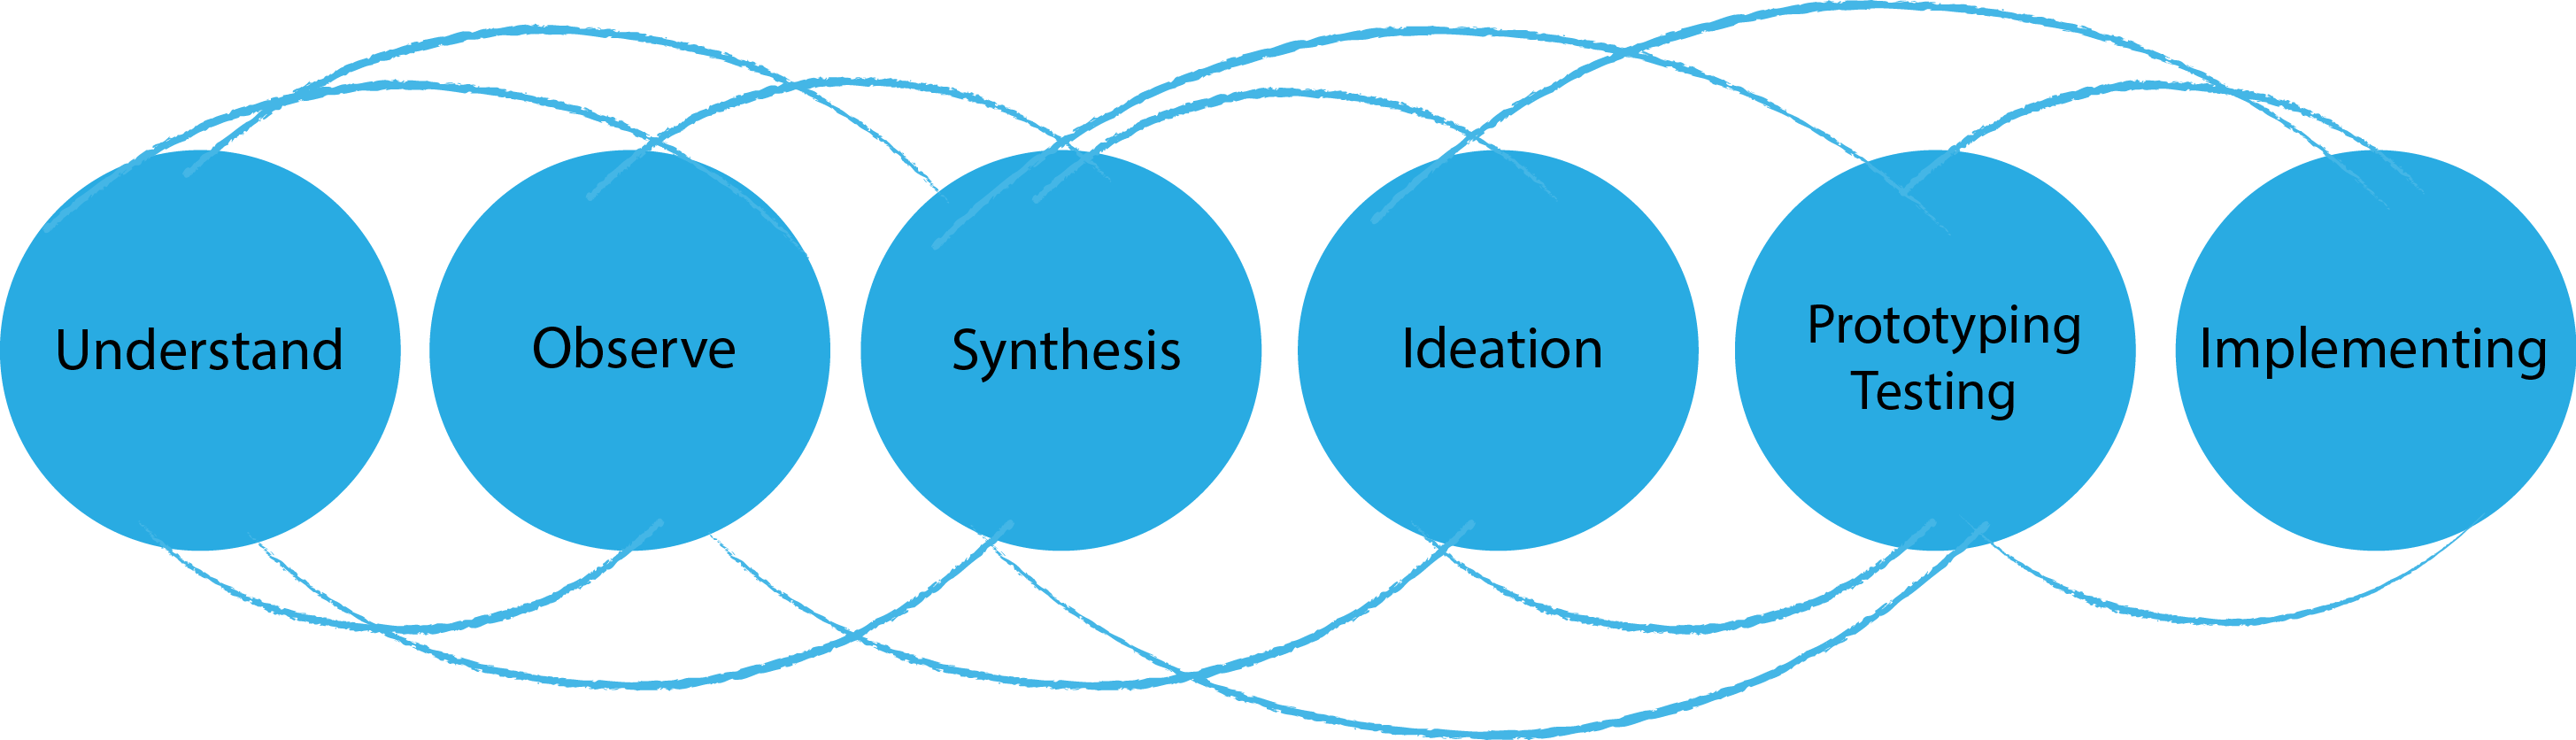 File:Design Thinking process in the Chapters Dialogue project.png - Wikimedia Commons